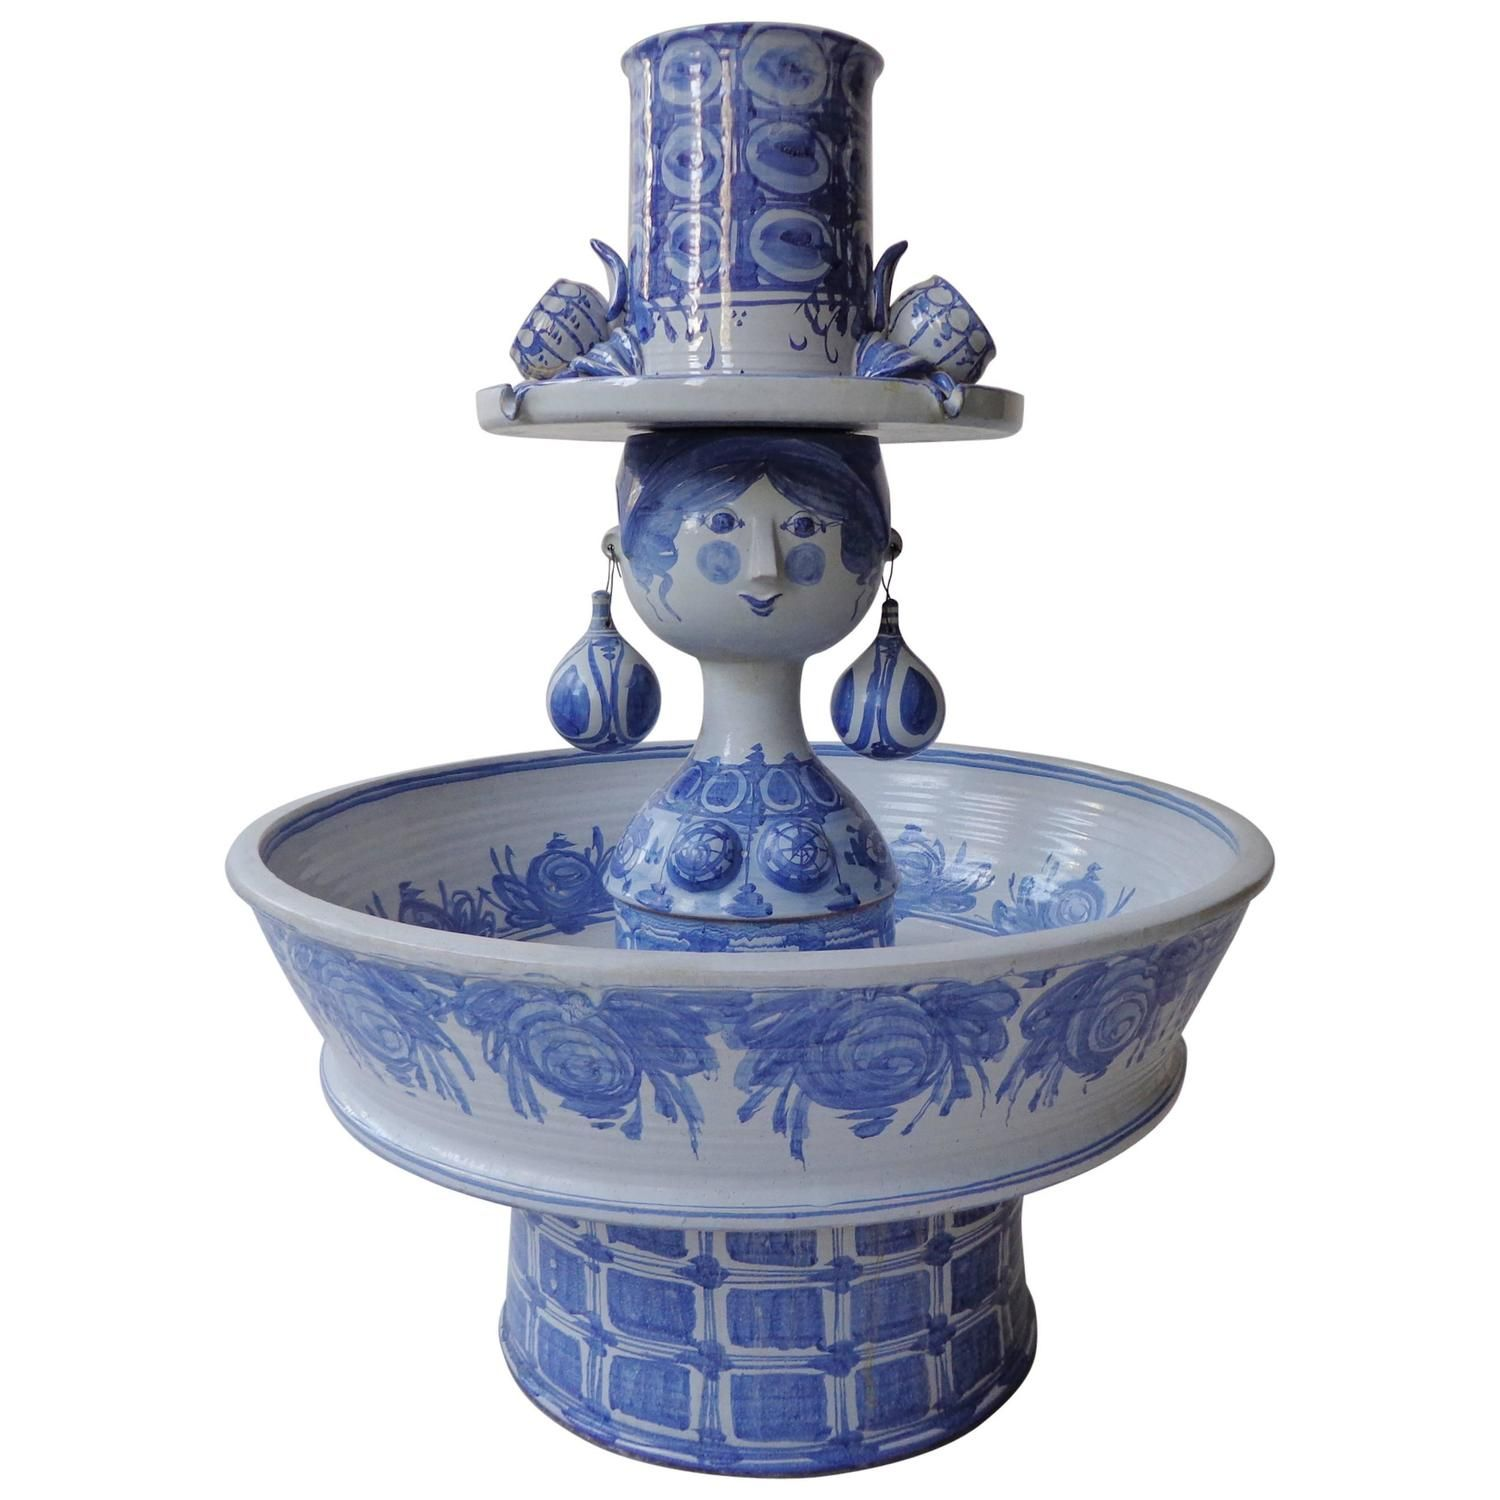 Unique Monumental Fountain By Bjørn Wiinblad In Blue Glaze Ceramic From A Collection Of